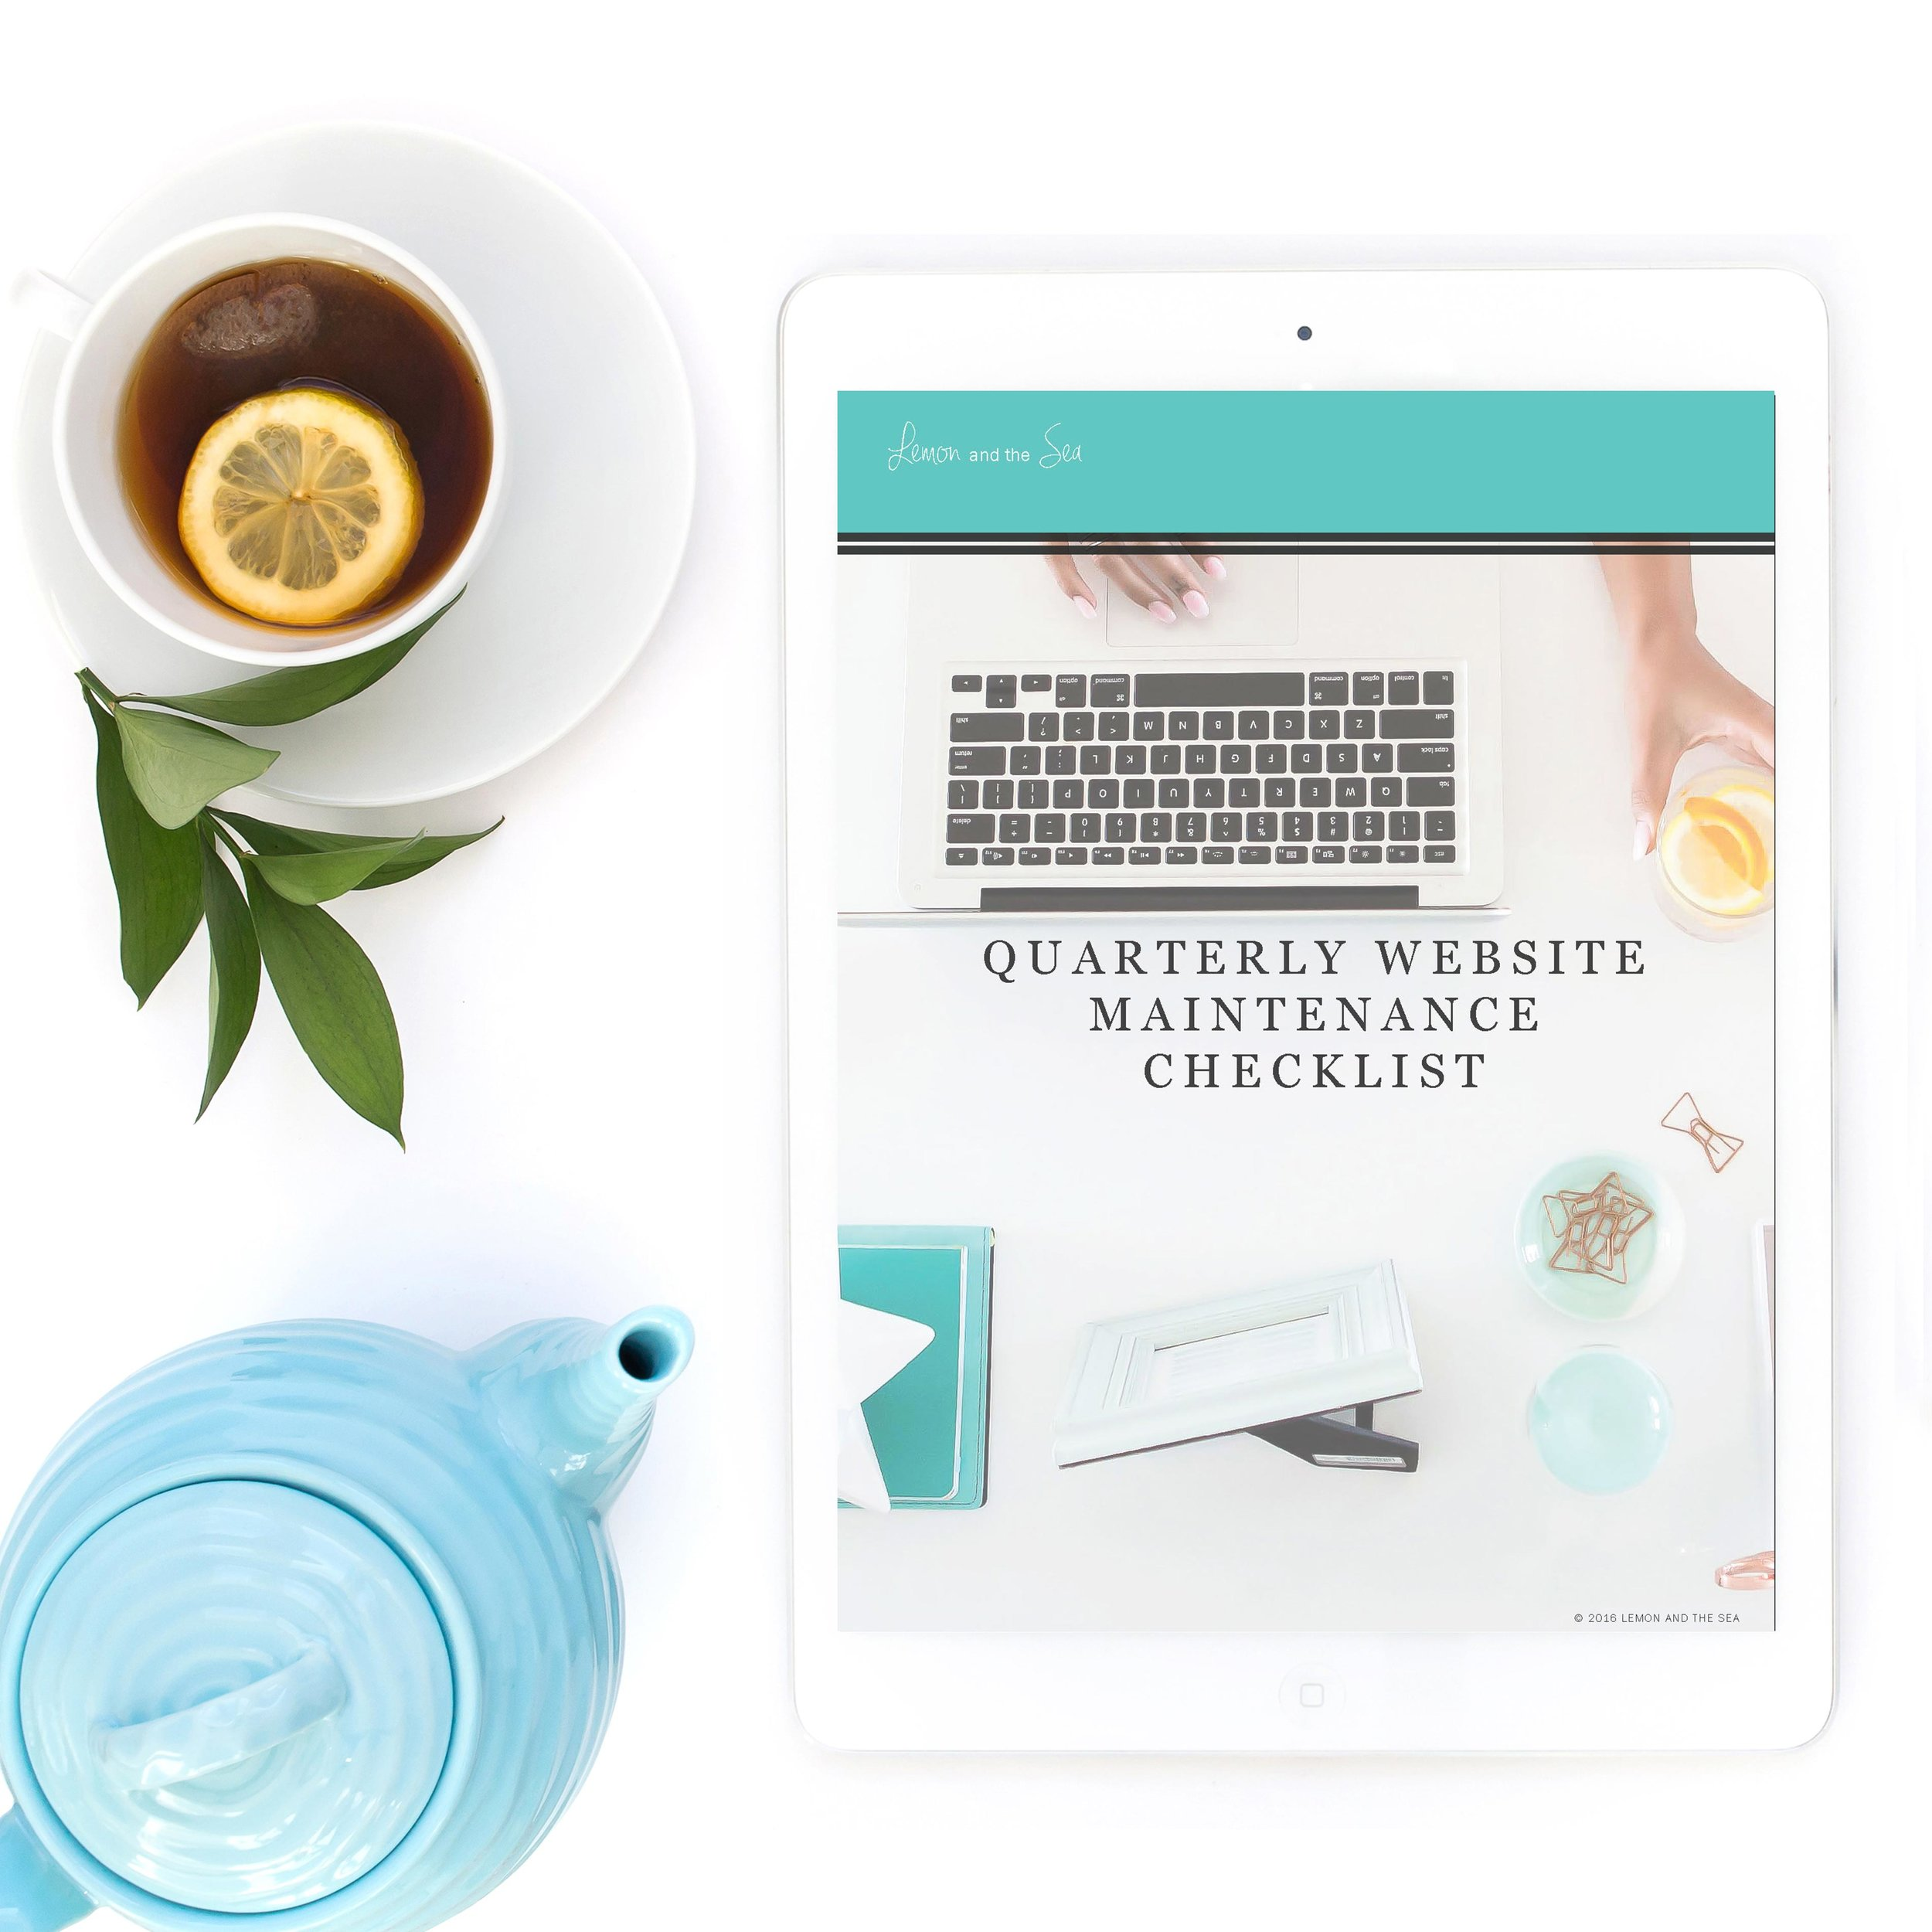 Quarterly Website Maintenance Checklist free guide from Lemon and the Sea for strategic website design with beauty and brains